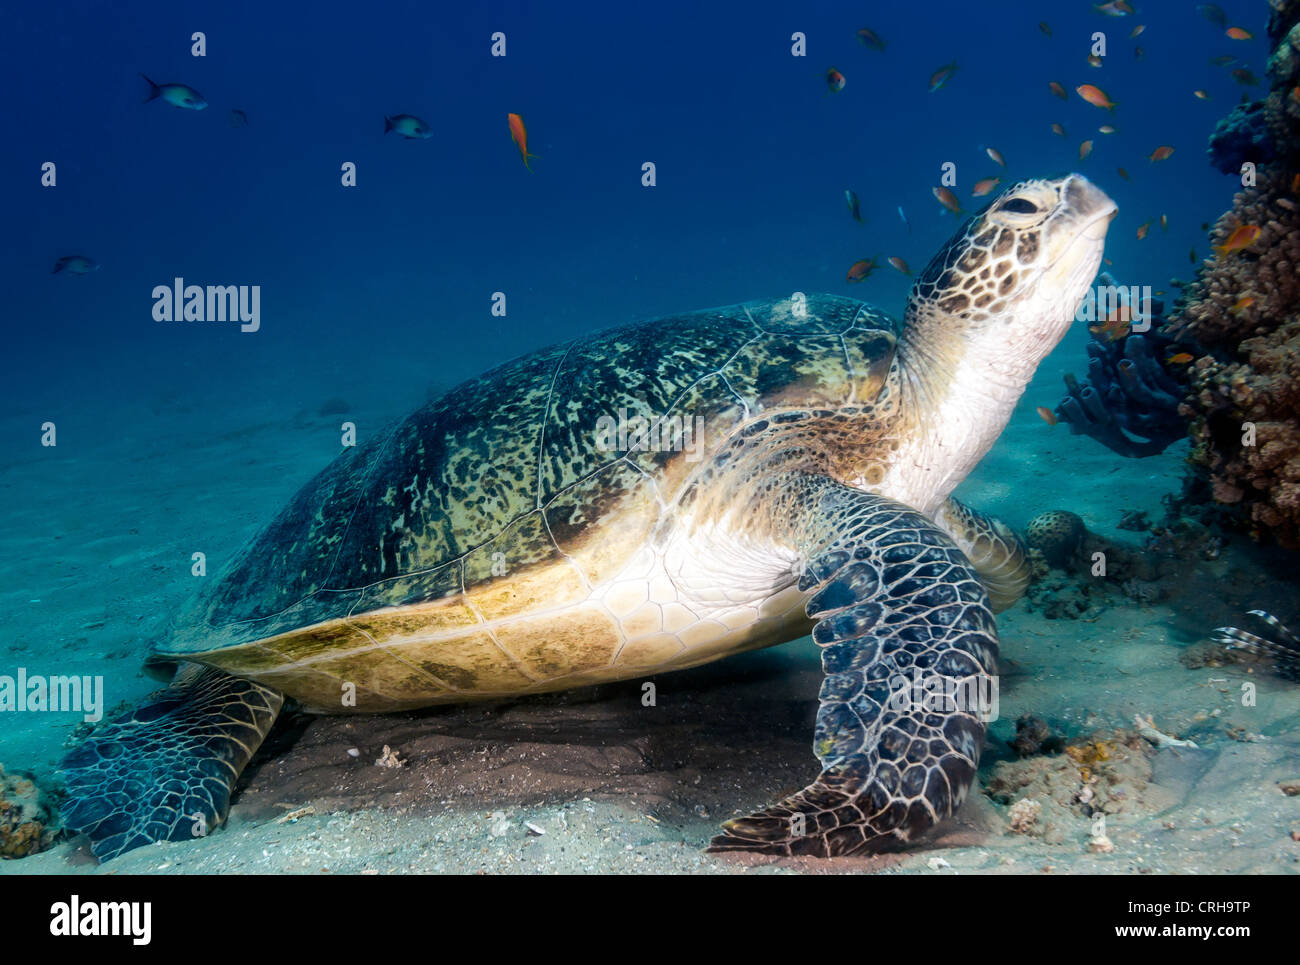 A Green Sea Turtle puts its head in the air and poses to the camera next to a coral pinnacle Stock Photo